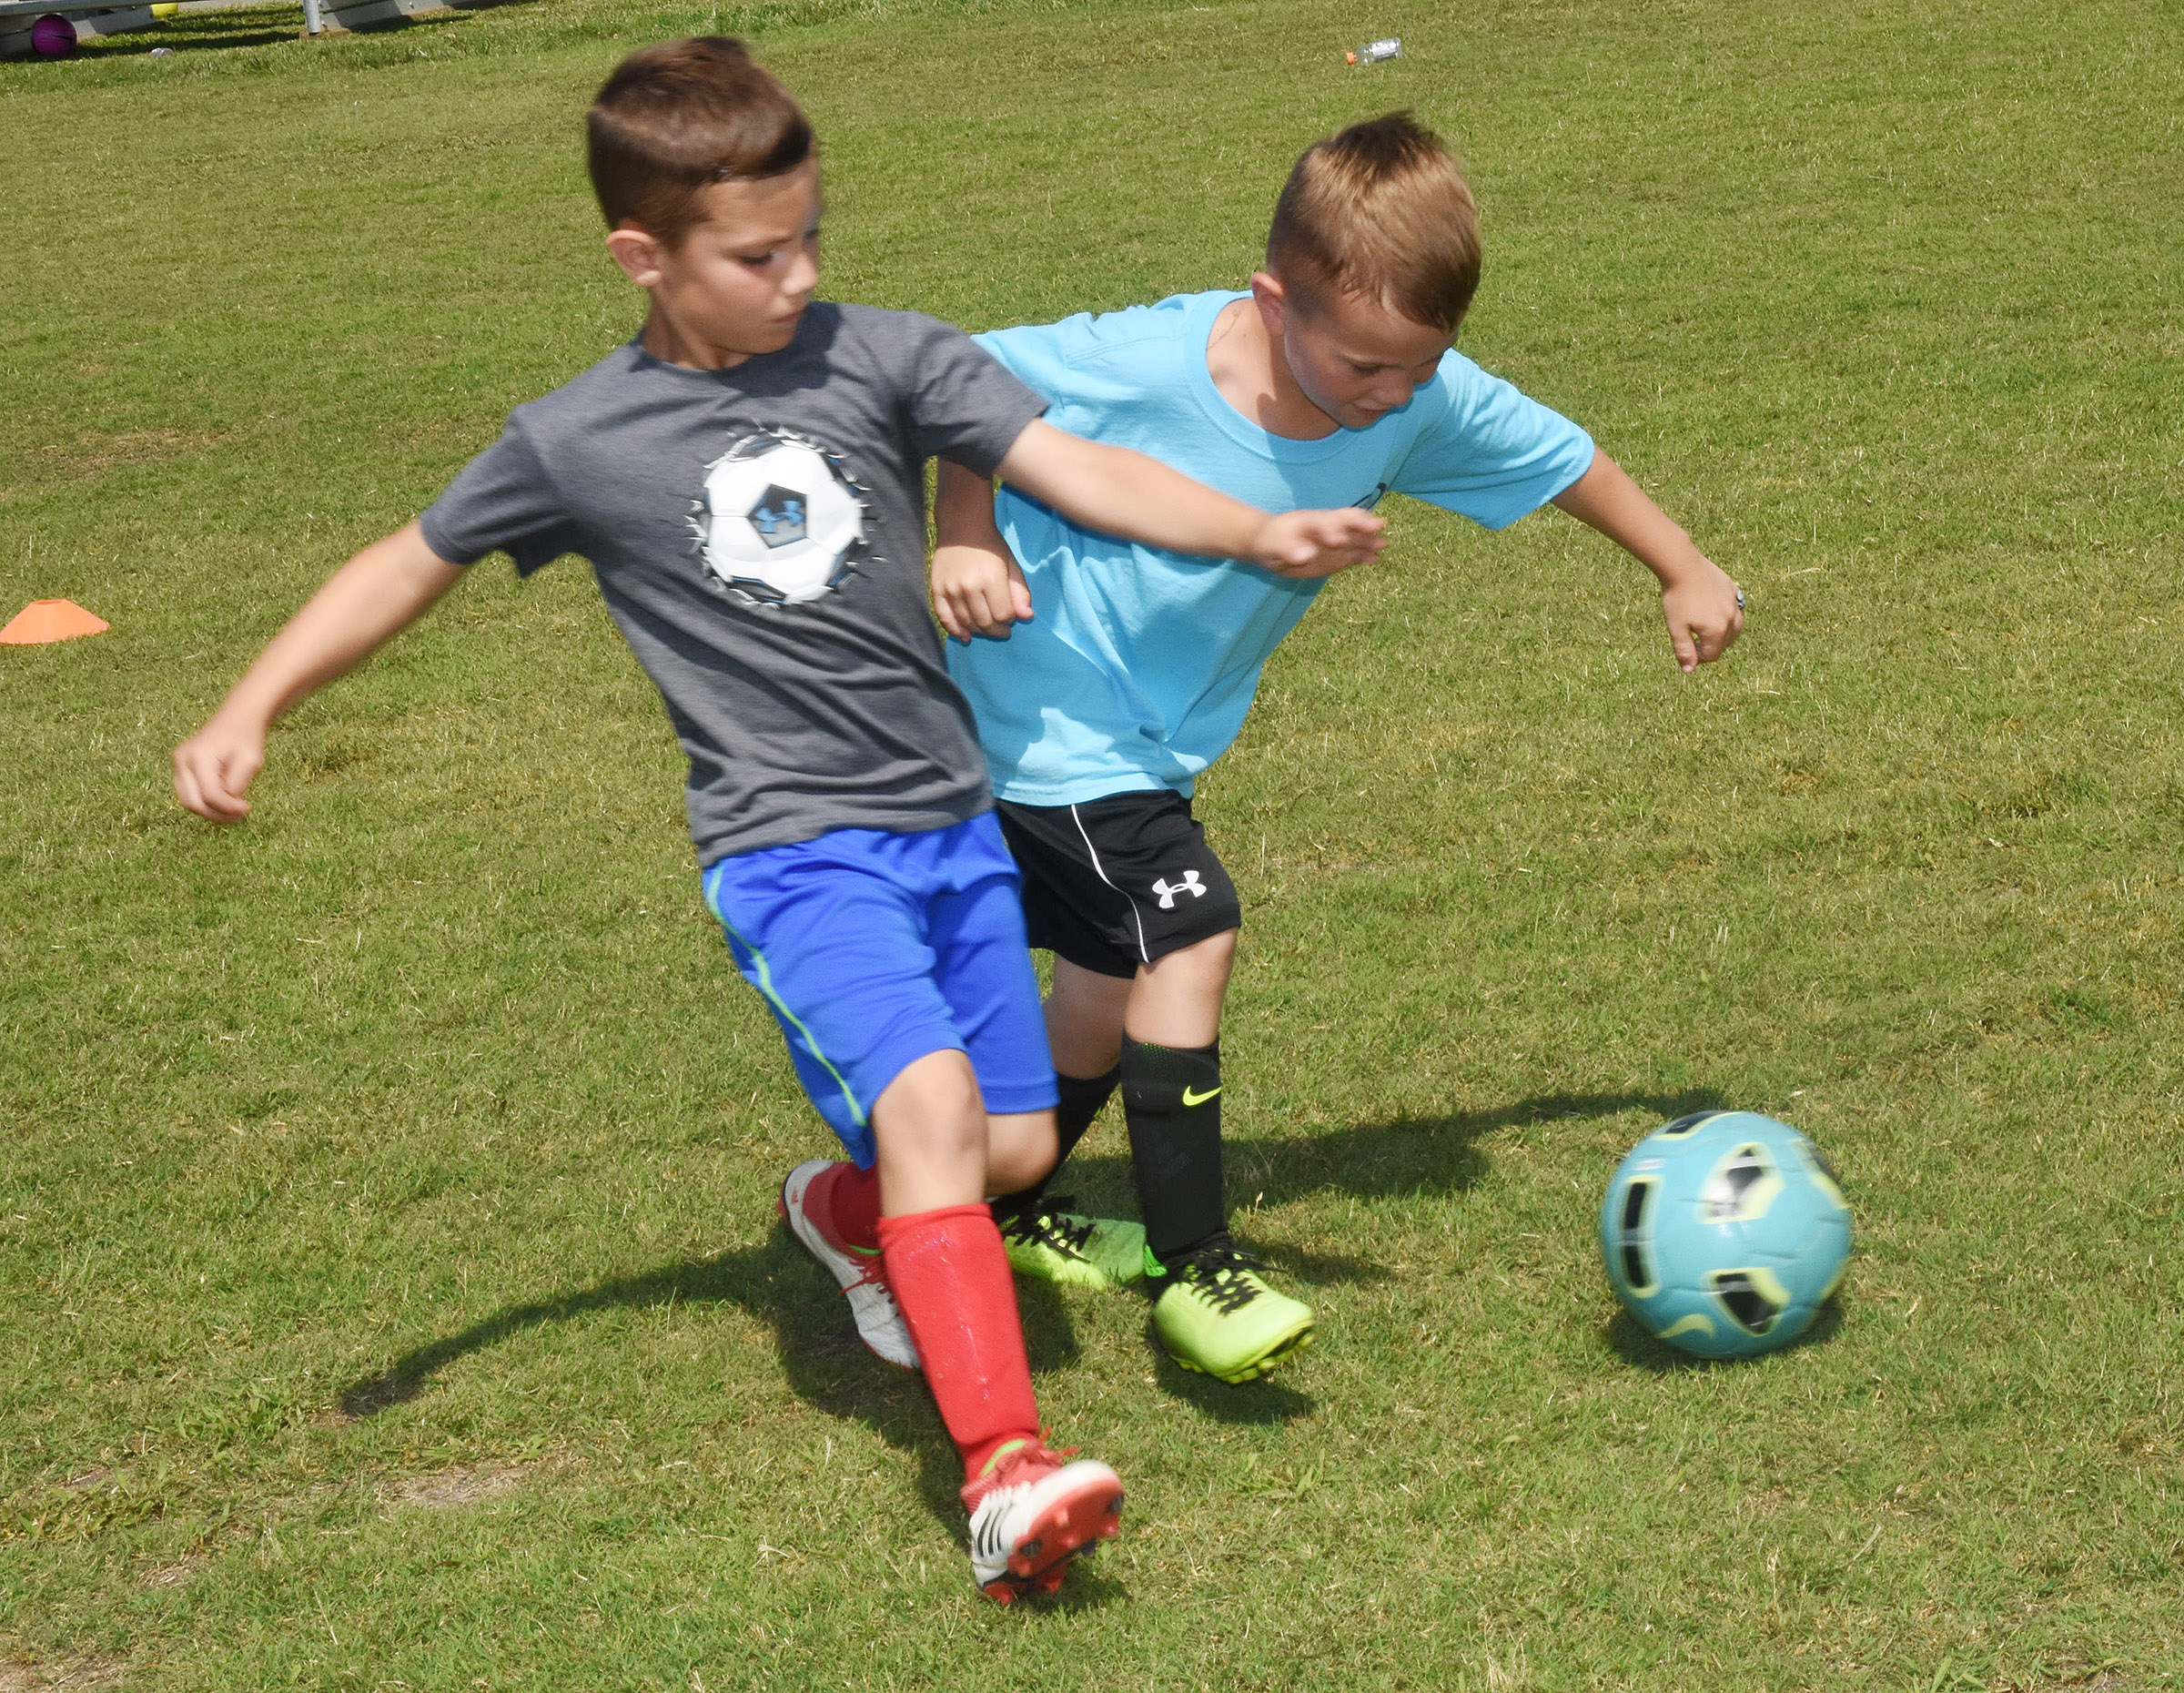 Campbellsville Elementary School second-grader Owen Skaggs, at left, and Owen Smith compete in a drill.